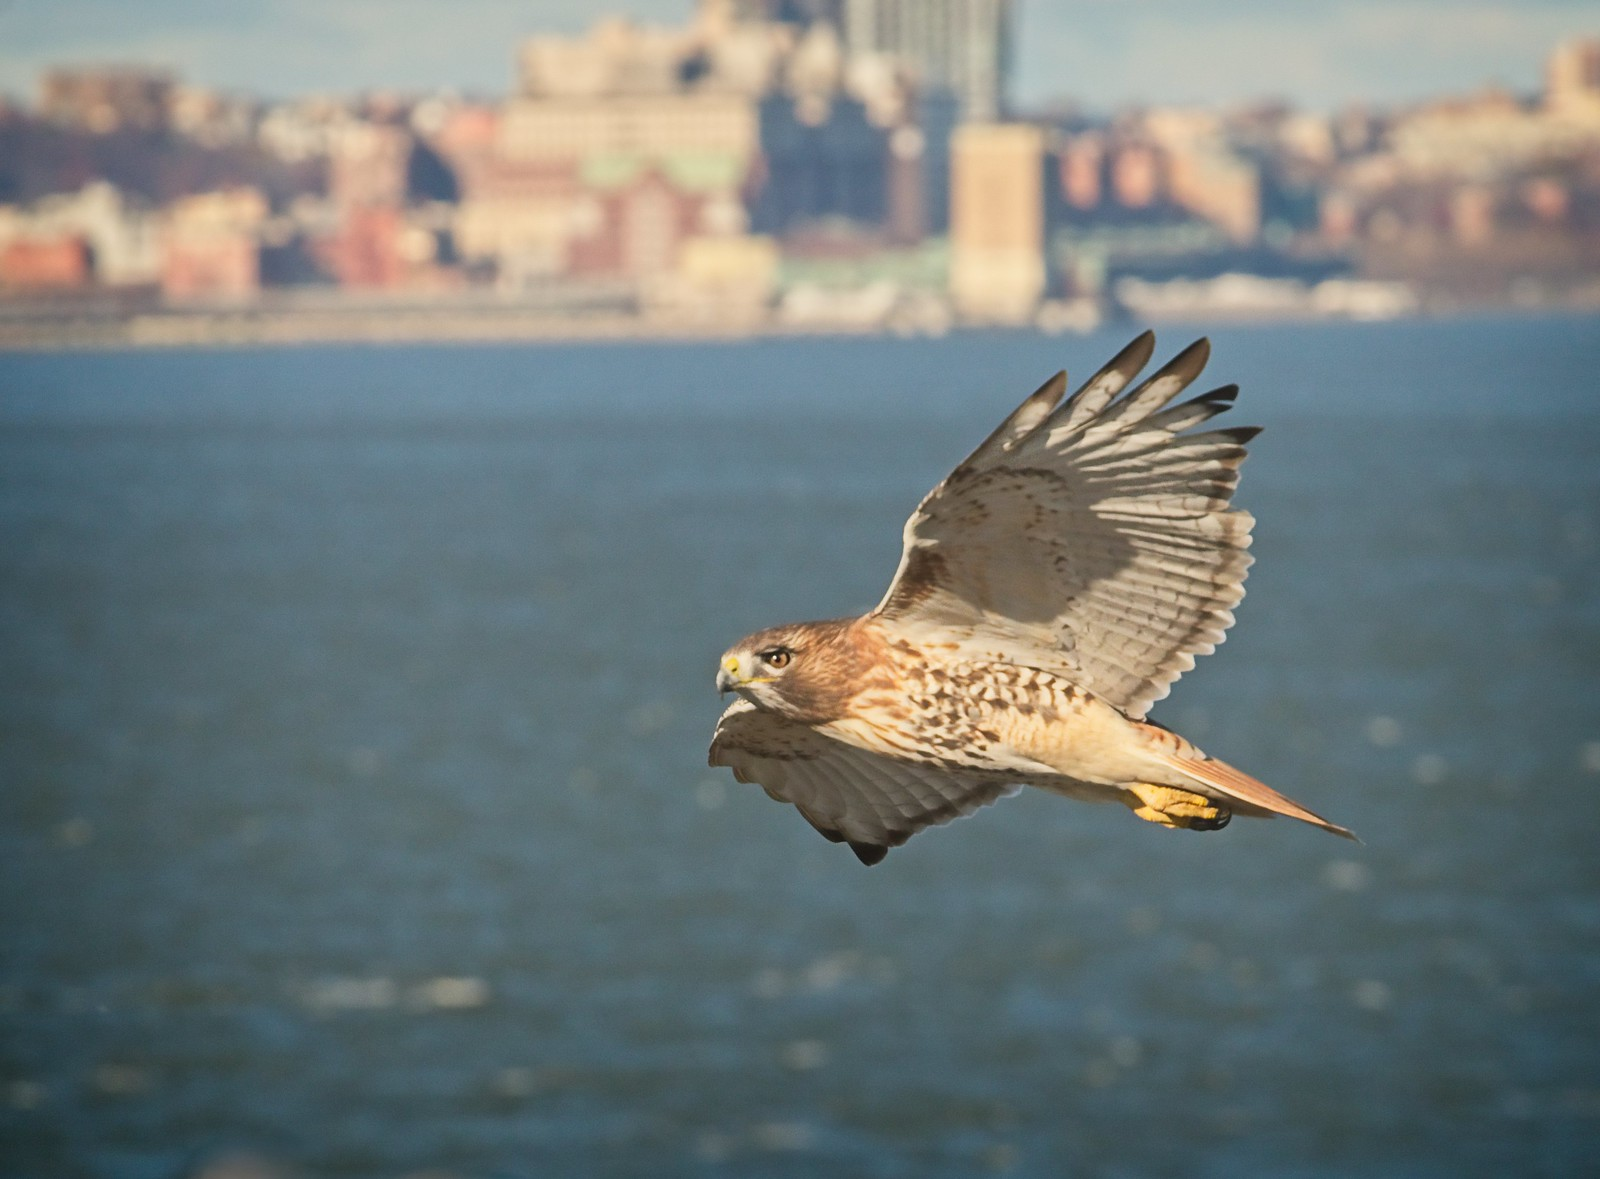 Red-tailed hawk flying over New York Harbor